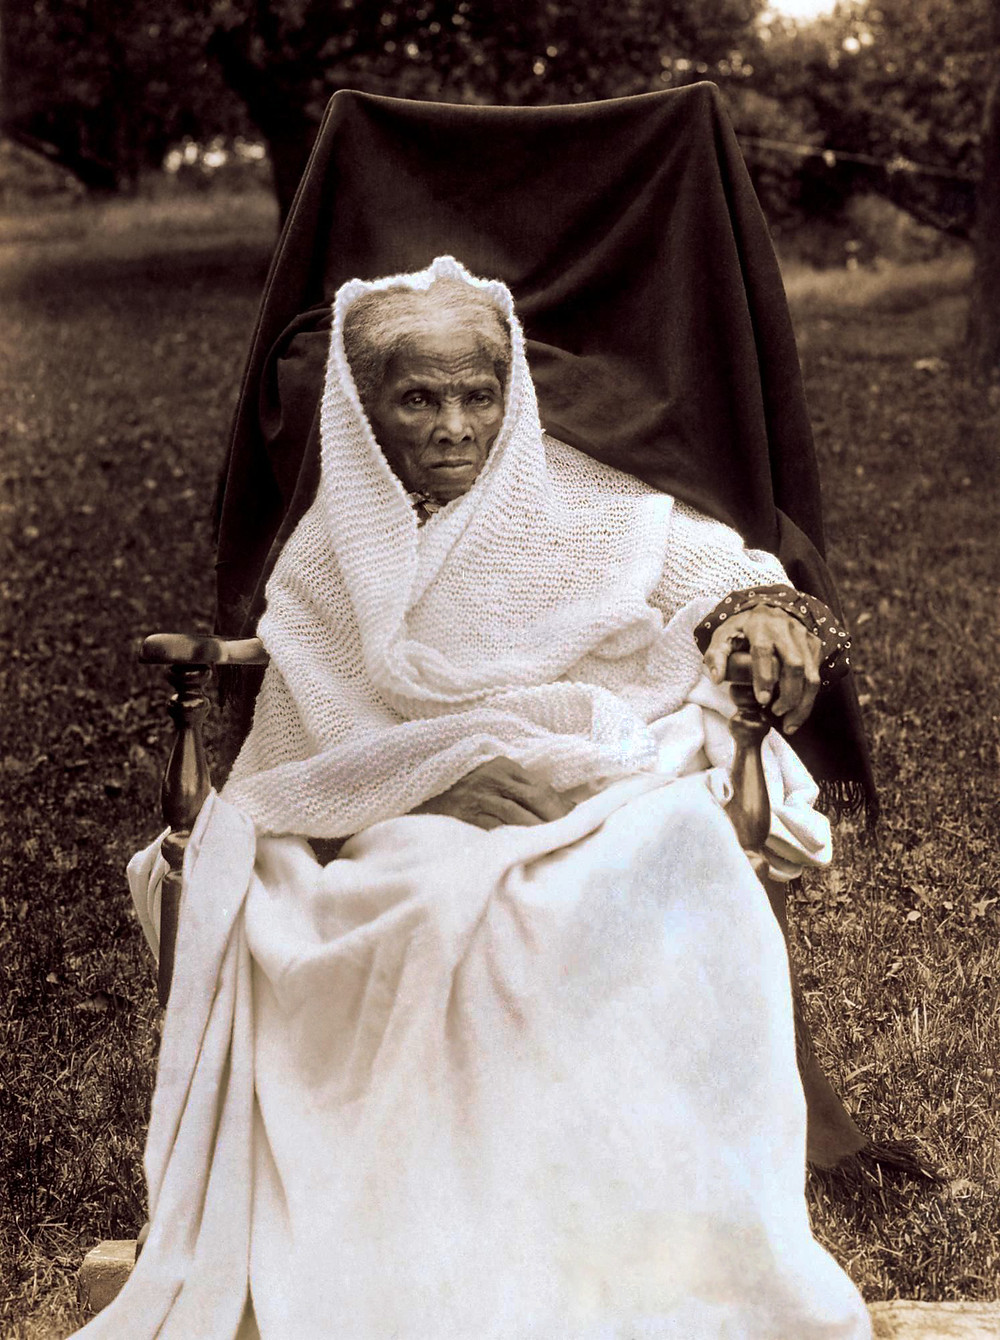 Badass Harriet Tubman, telling you every story with one stare from her awninged wheelchair wrapped in a knit shawl that a lamb shed for her, custom made.